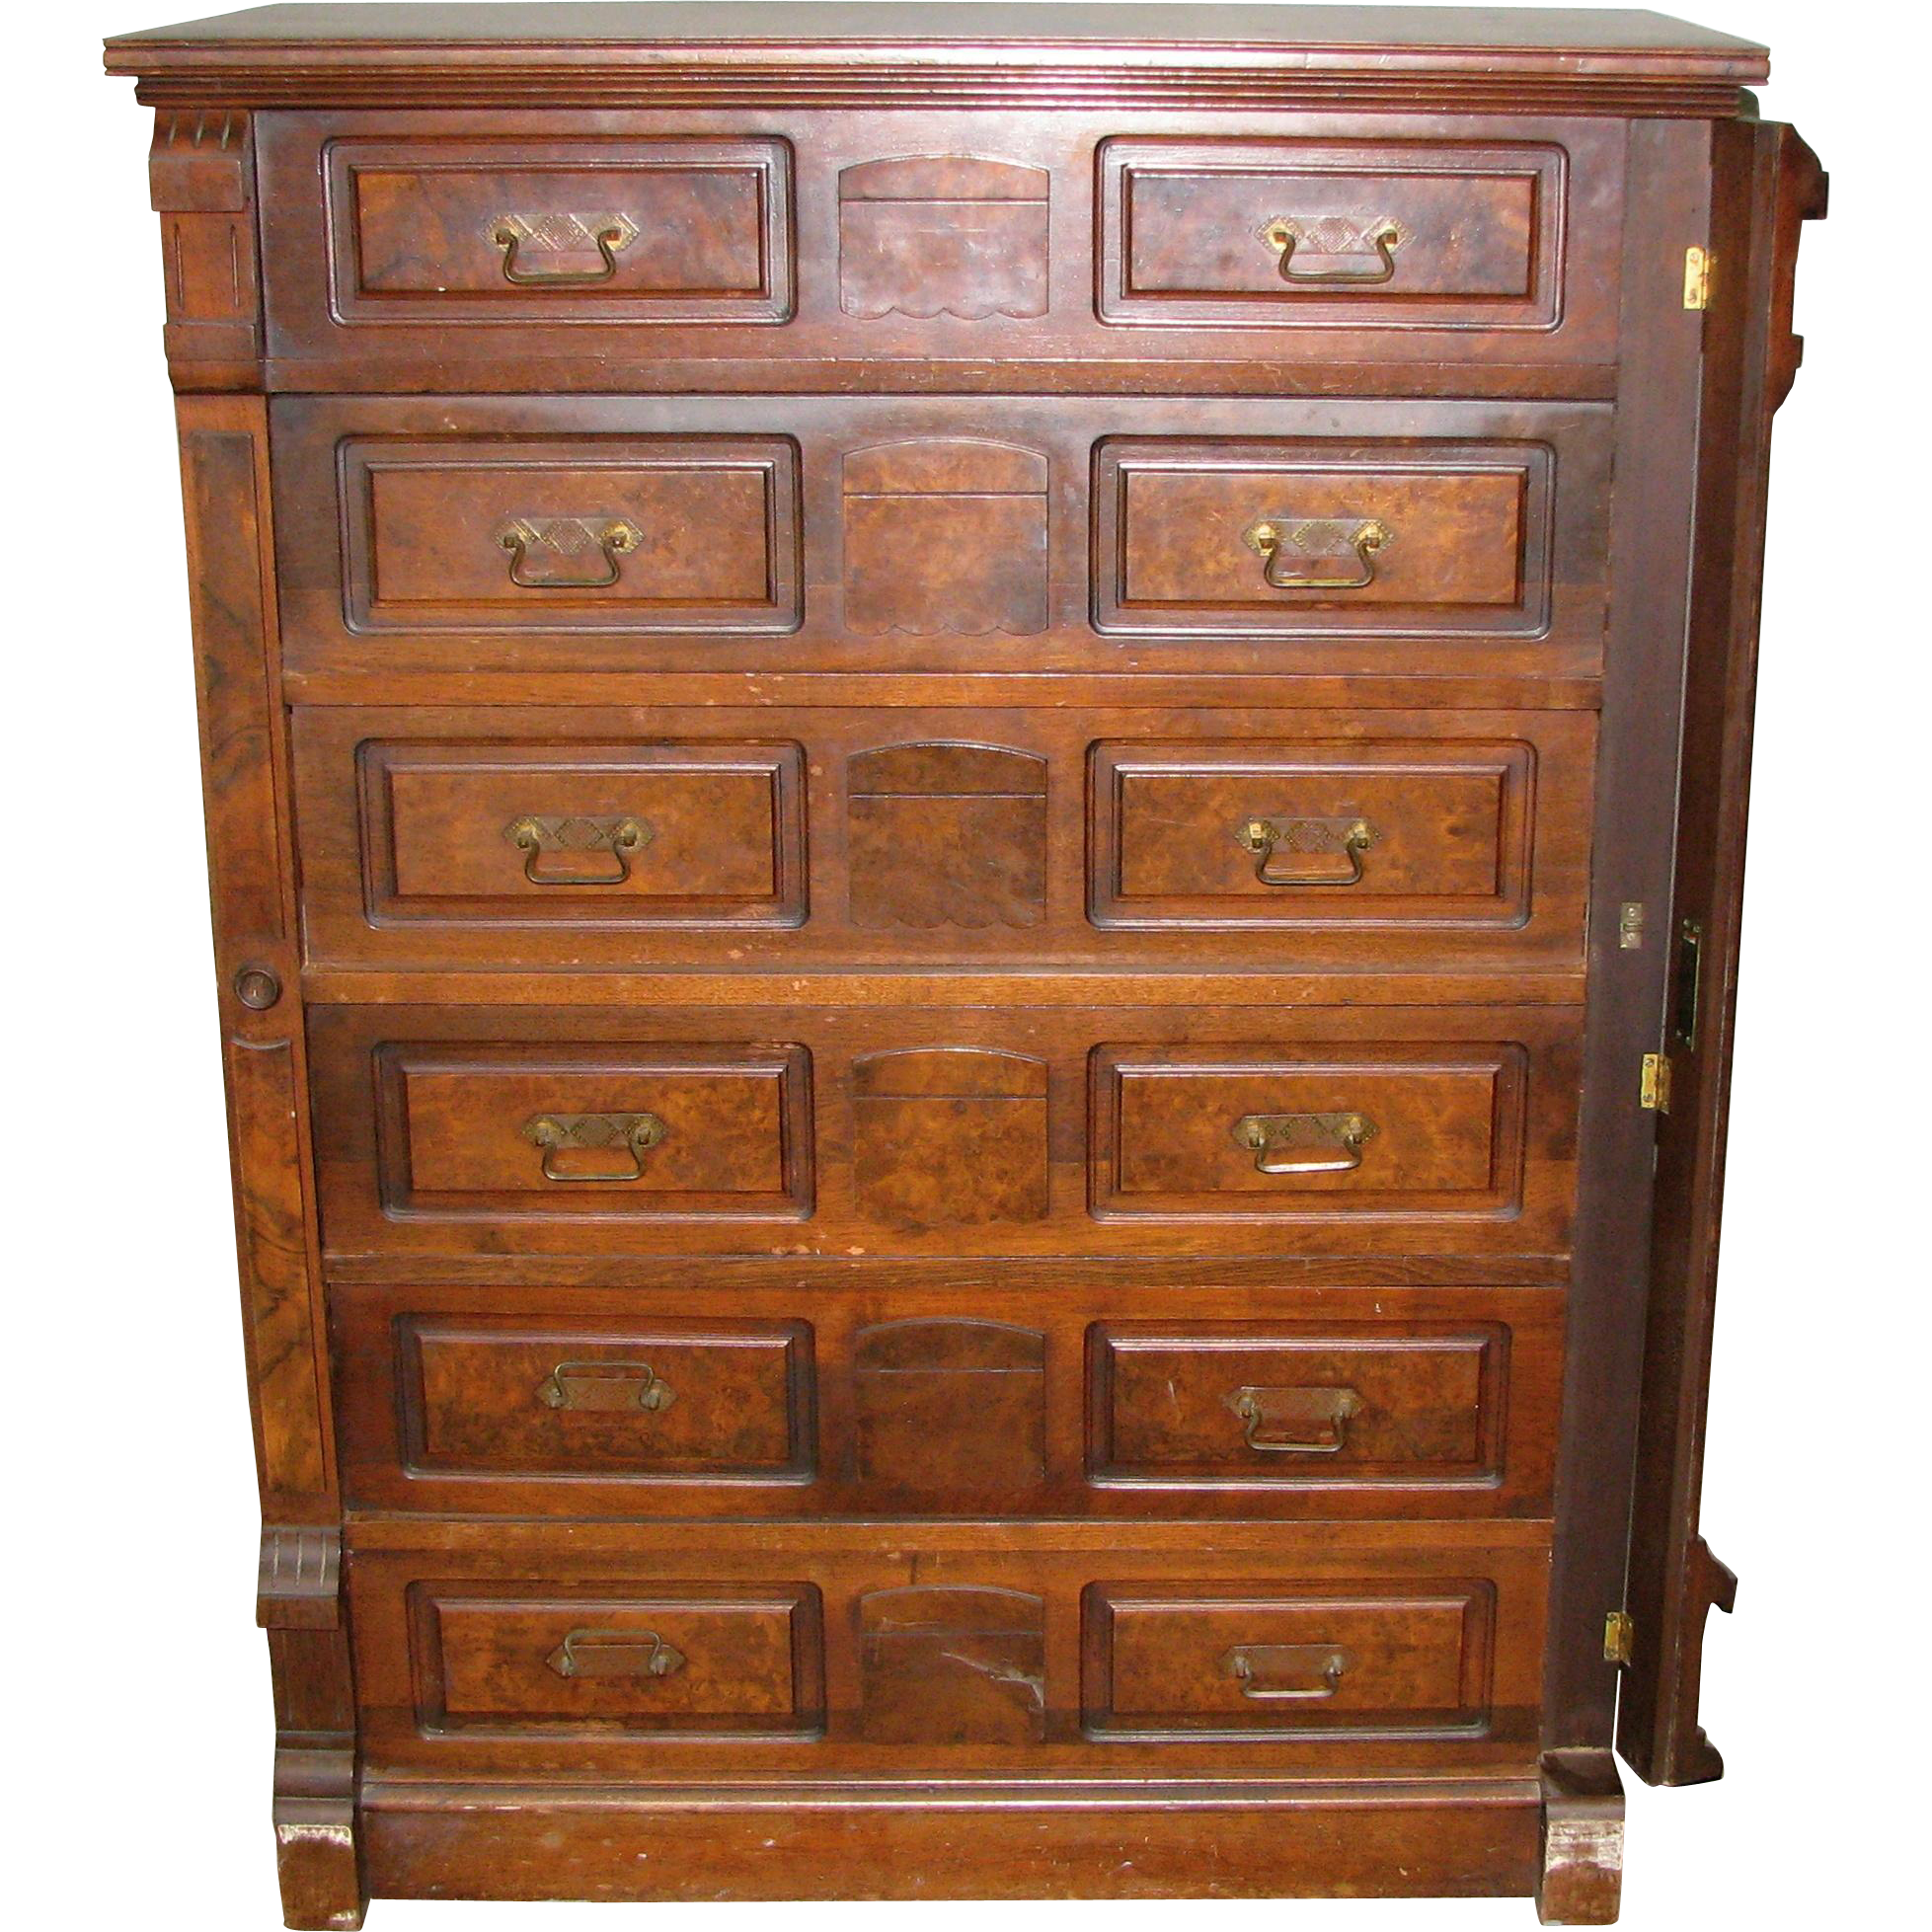 Stately walnut dresser with burled walnut panels